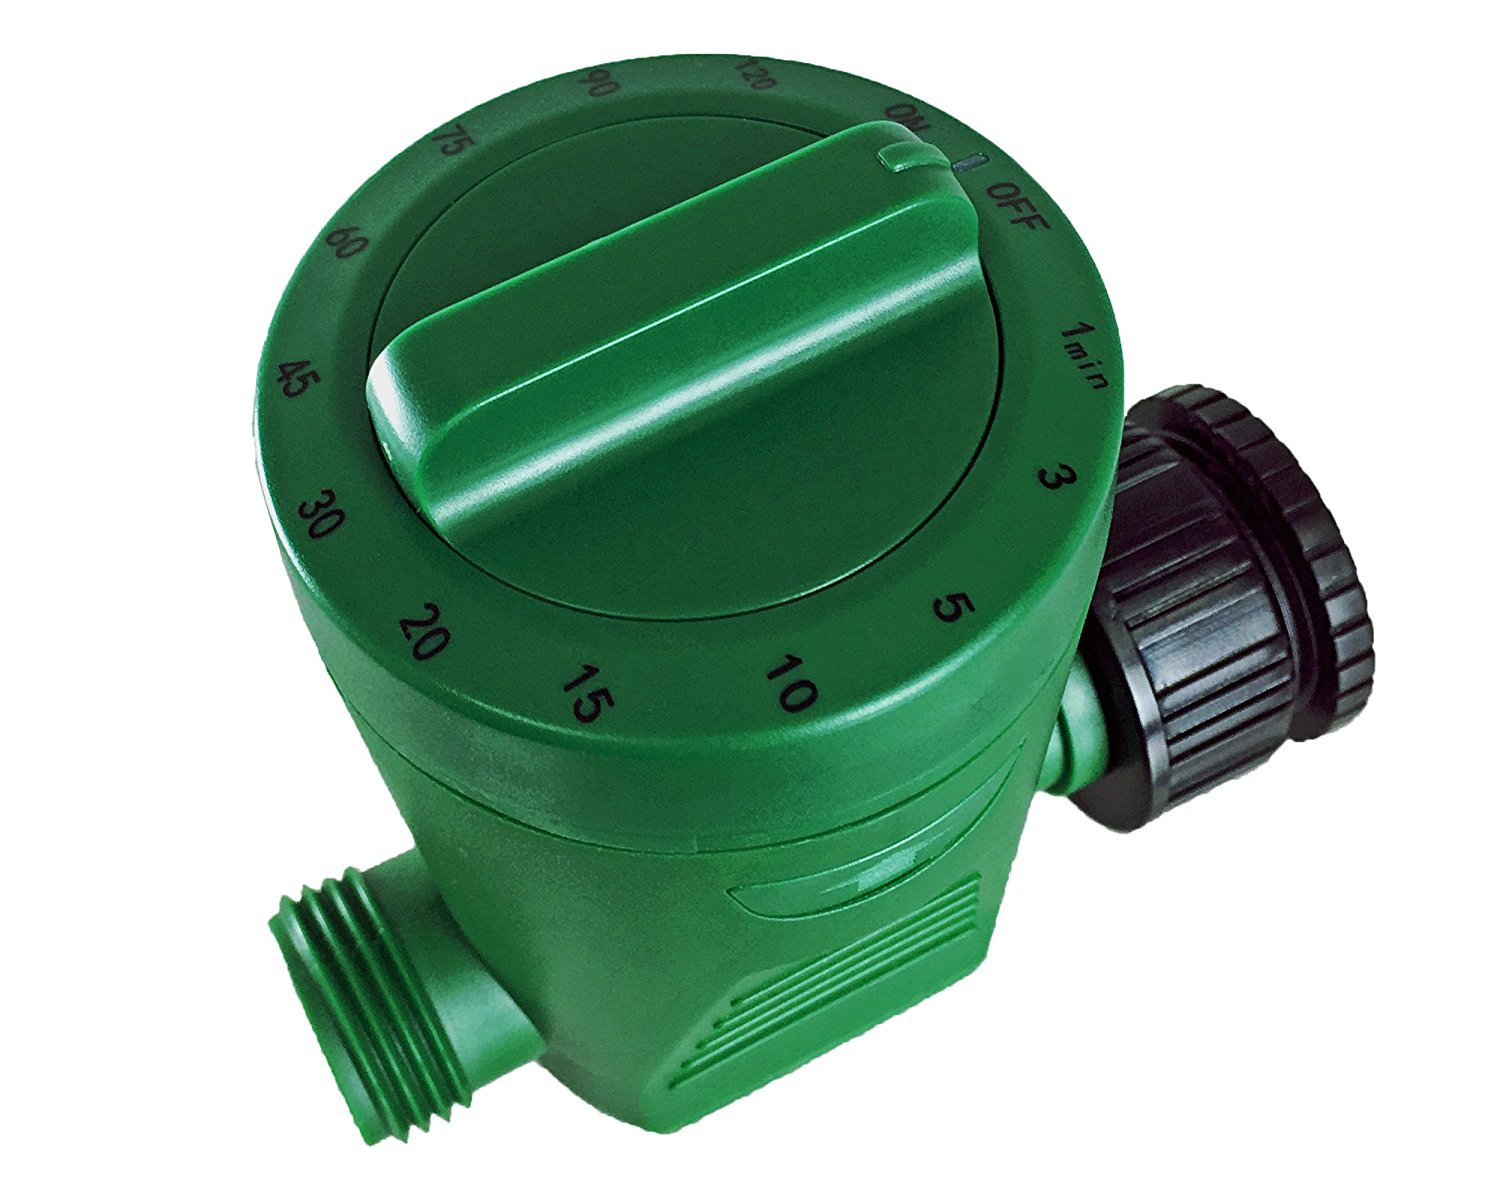 Instapark High Precision Electronic Outdoor Garden Hose End Automatic Shut Off Water Timer by Instapark